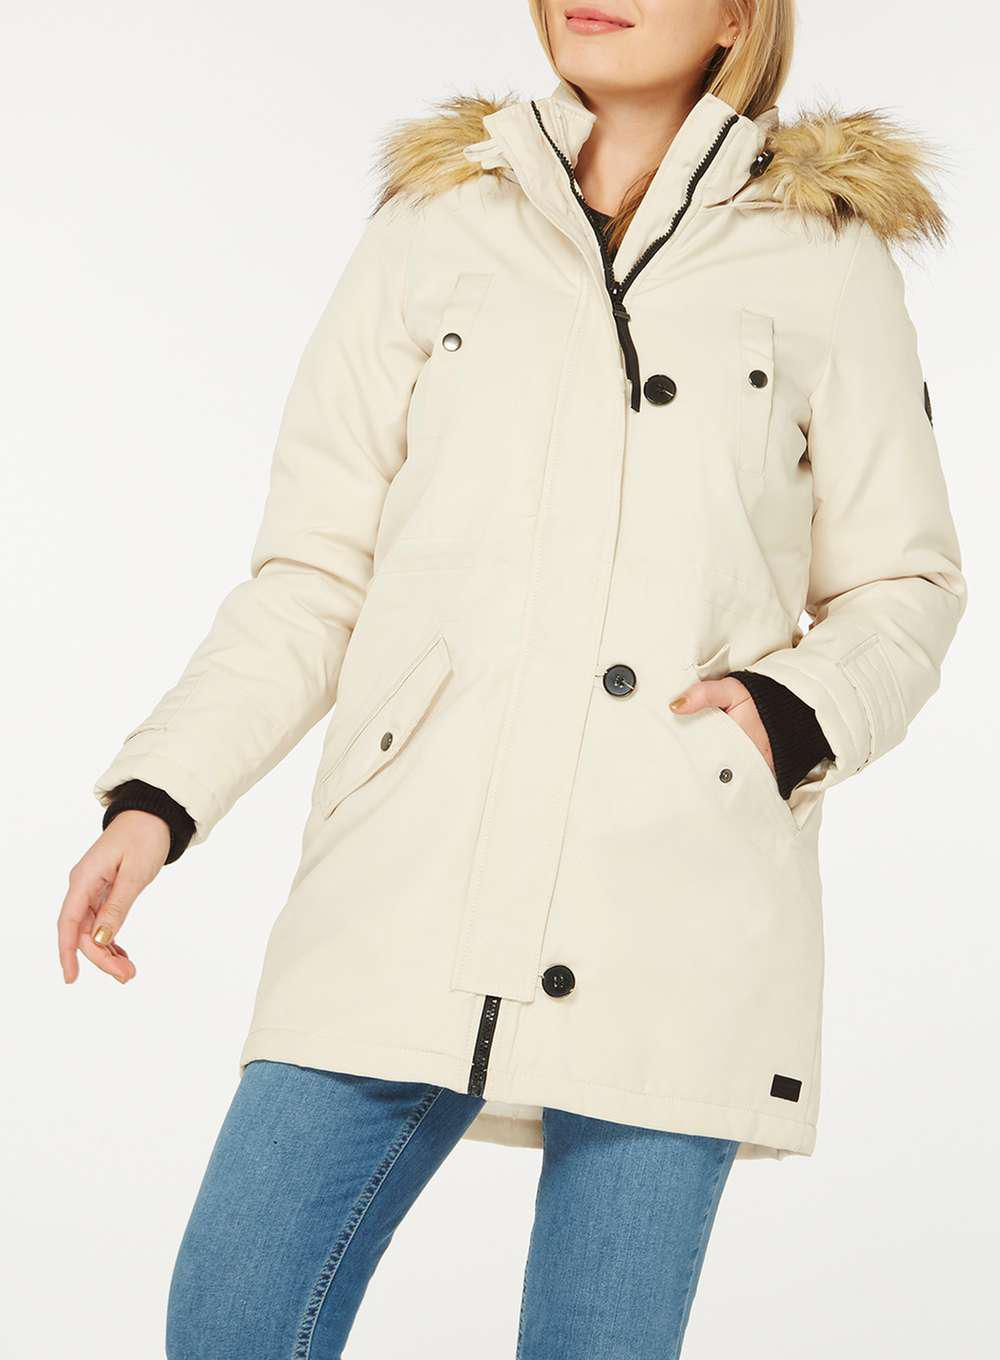 Outlet New Arrival Dorothy Perkins Womens **Vero Moda Oatmeal Faux Fur Hood Parka Coat- Clearance Recommend Amazon Cheap Online Outlet Amazing Price Kouo20M